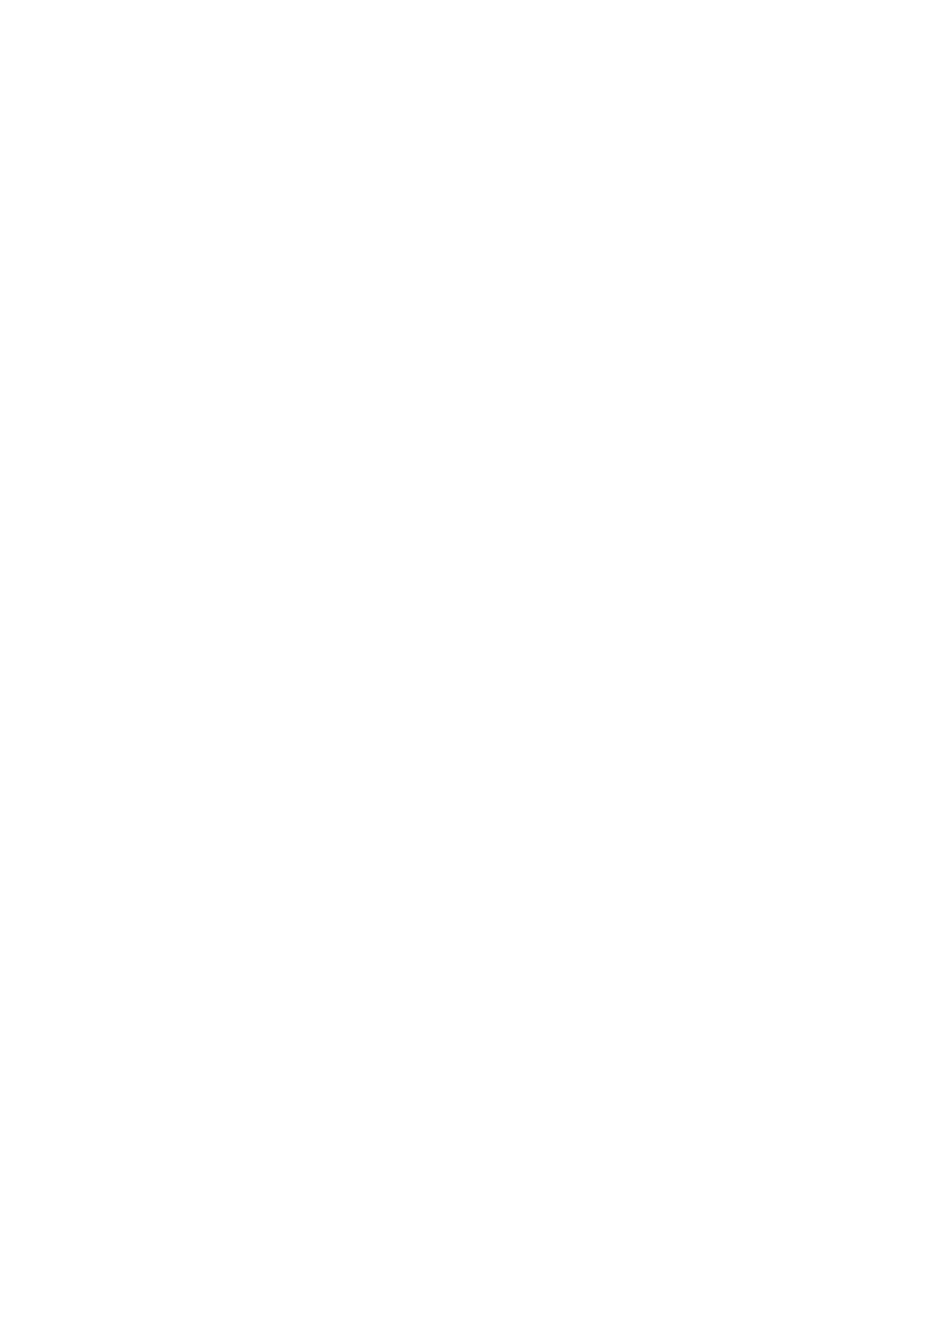 GLEN-LOGO_white-fill-r_2021